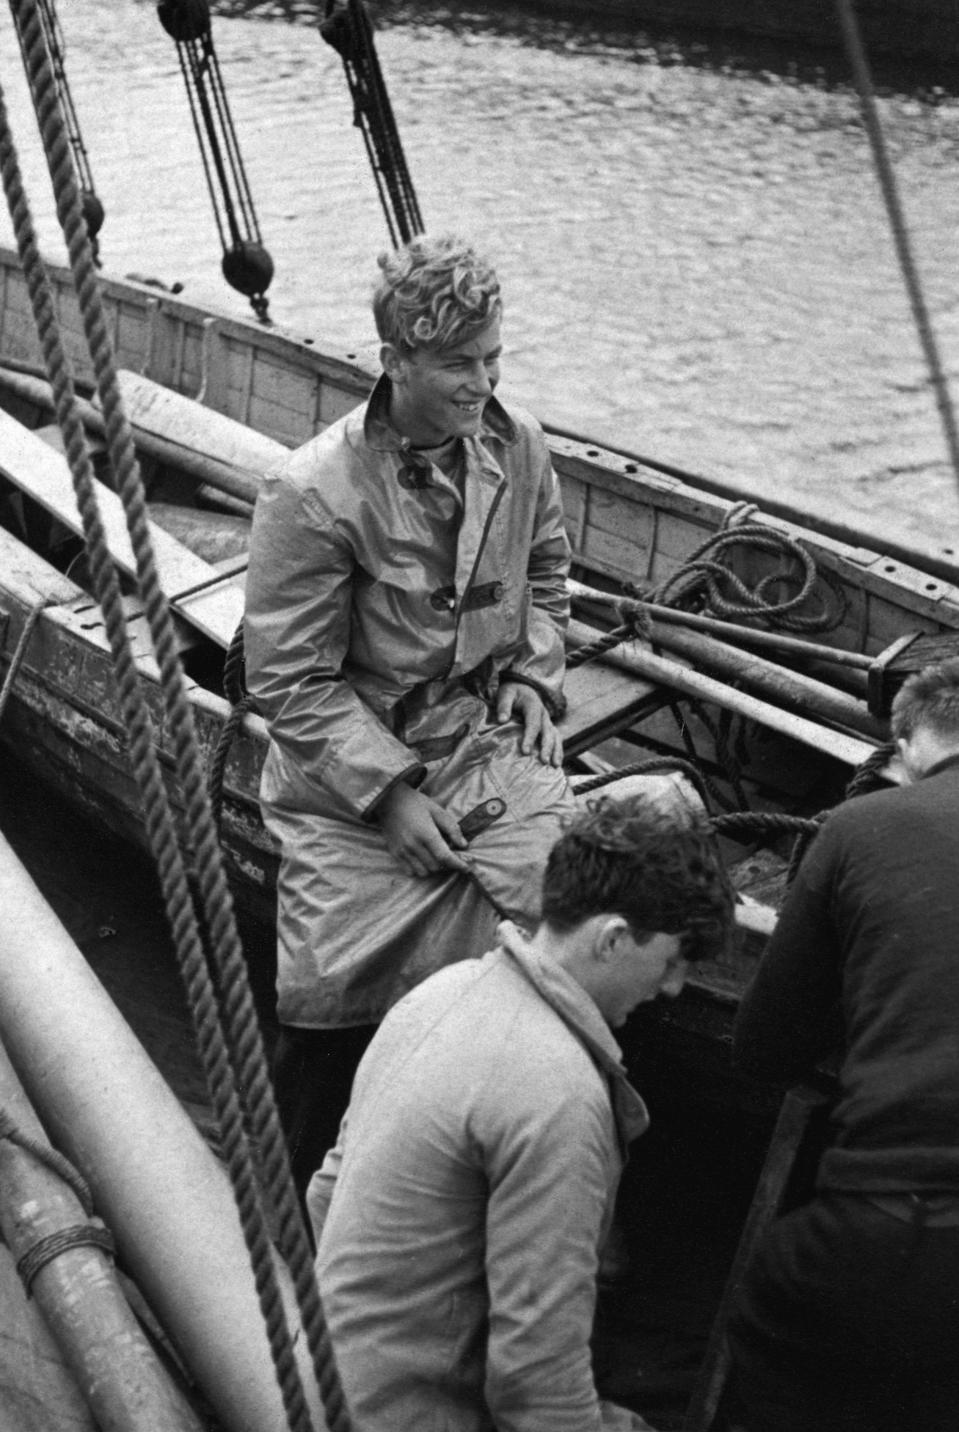 <p>The future Duke of Edinburgh grinned during a sailing trip as a young man. Photo: Getty Images.</p>